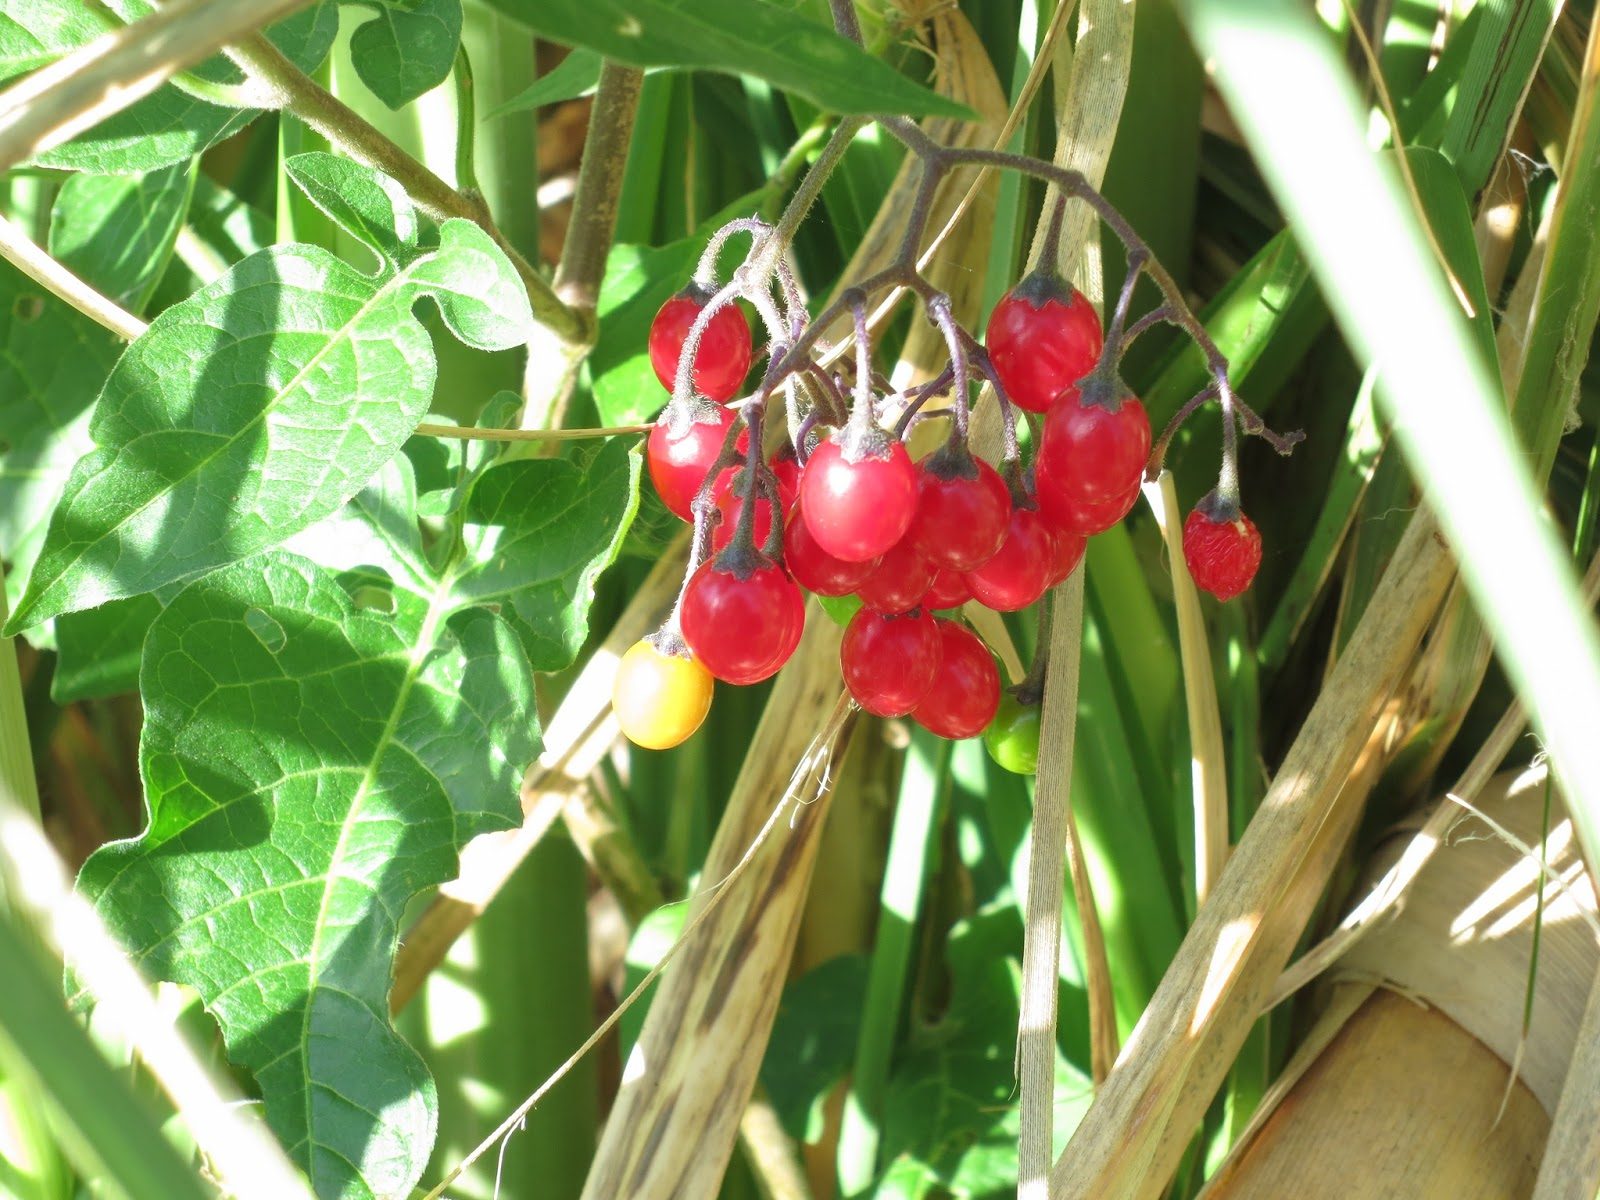 Woody Nightshade berries - red and yellow - with their leaves in pampas grass